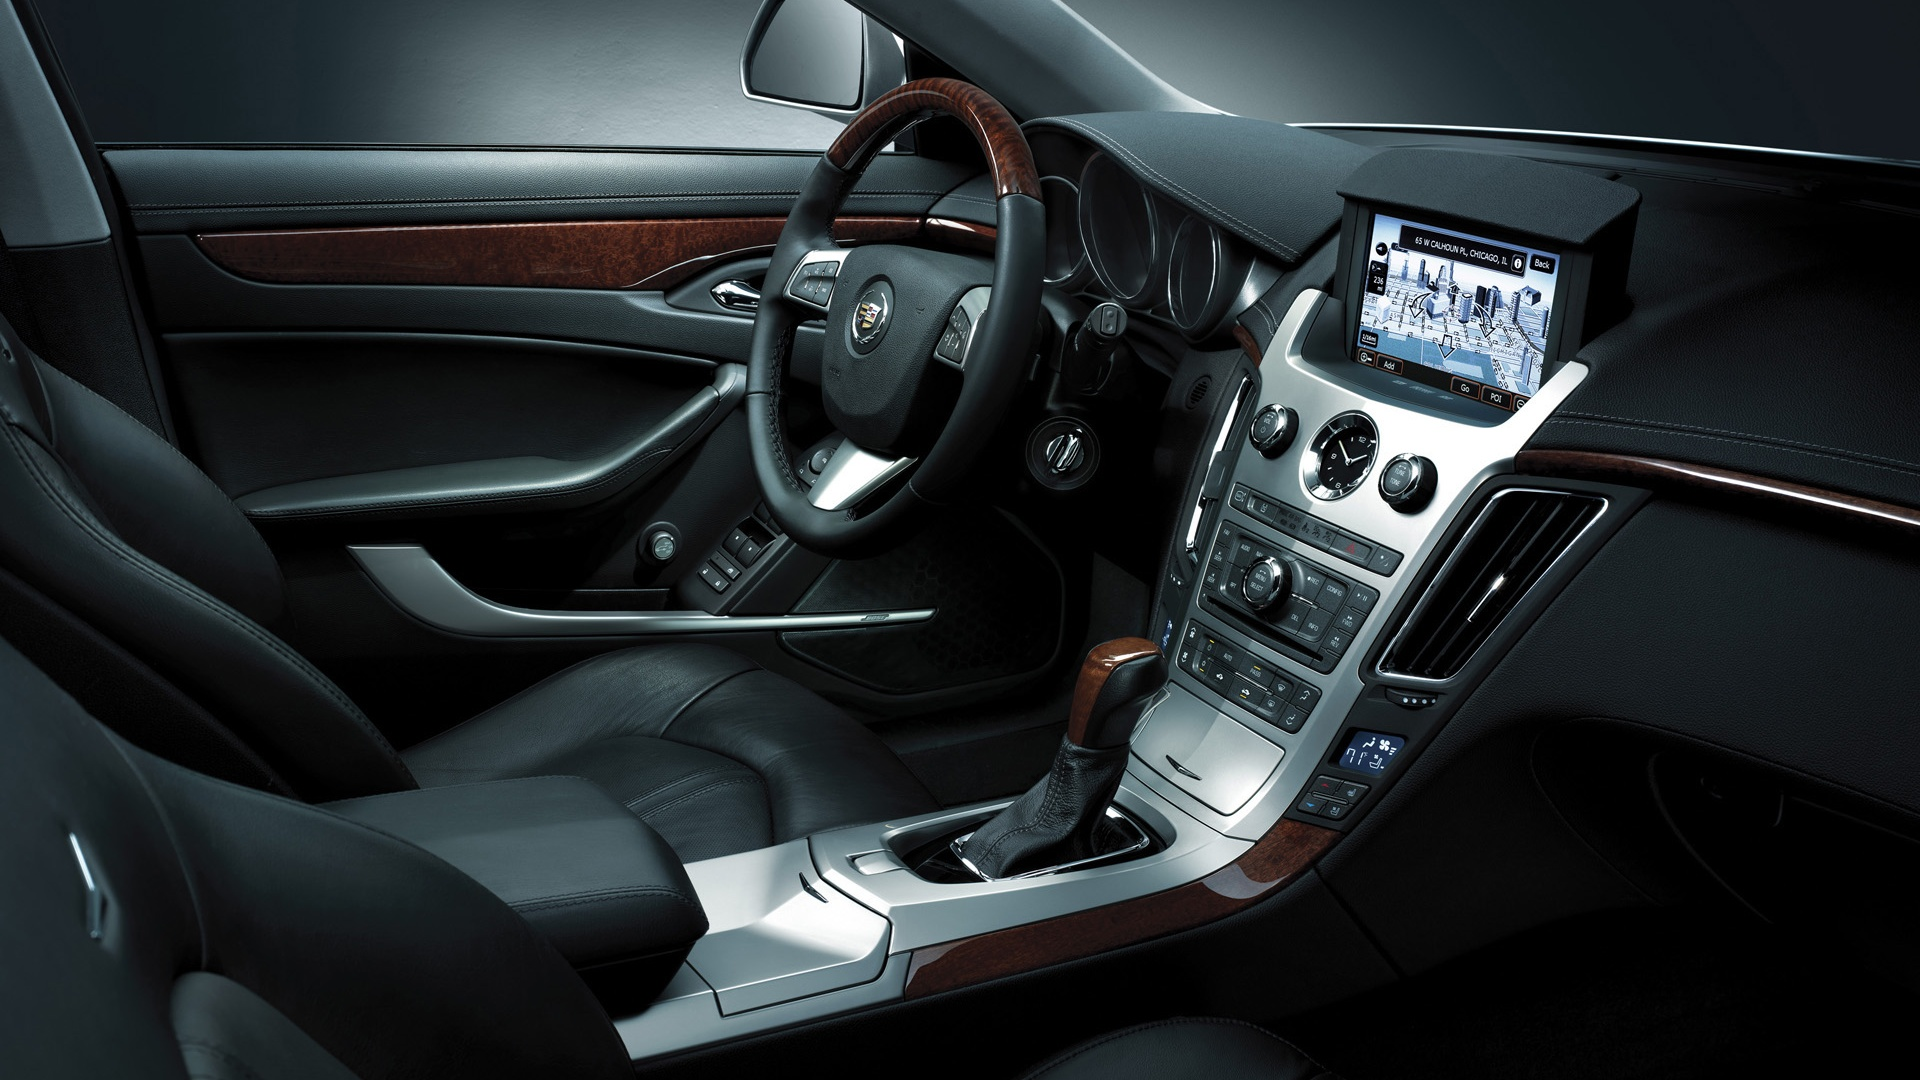 1920x1080 2013 Cadillac Cts Coupe Interior Desktop Pc And